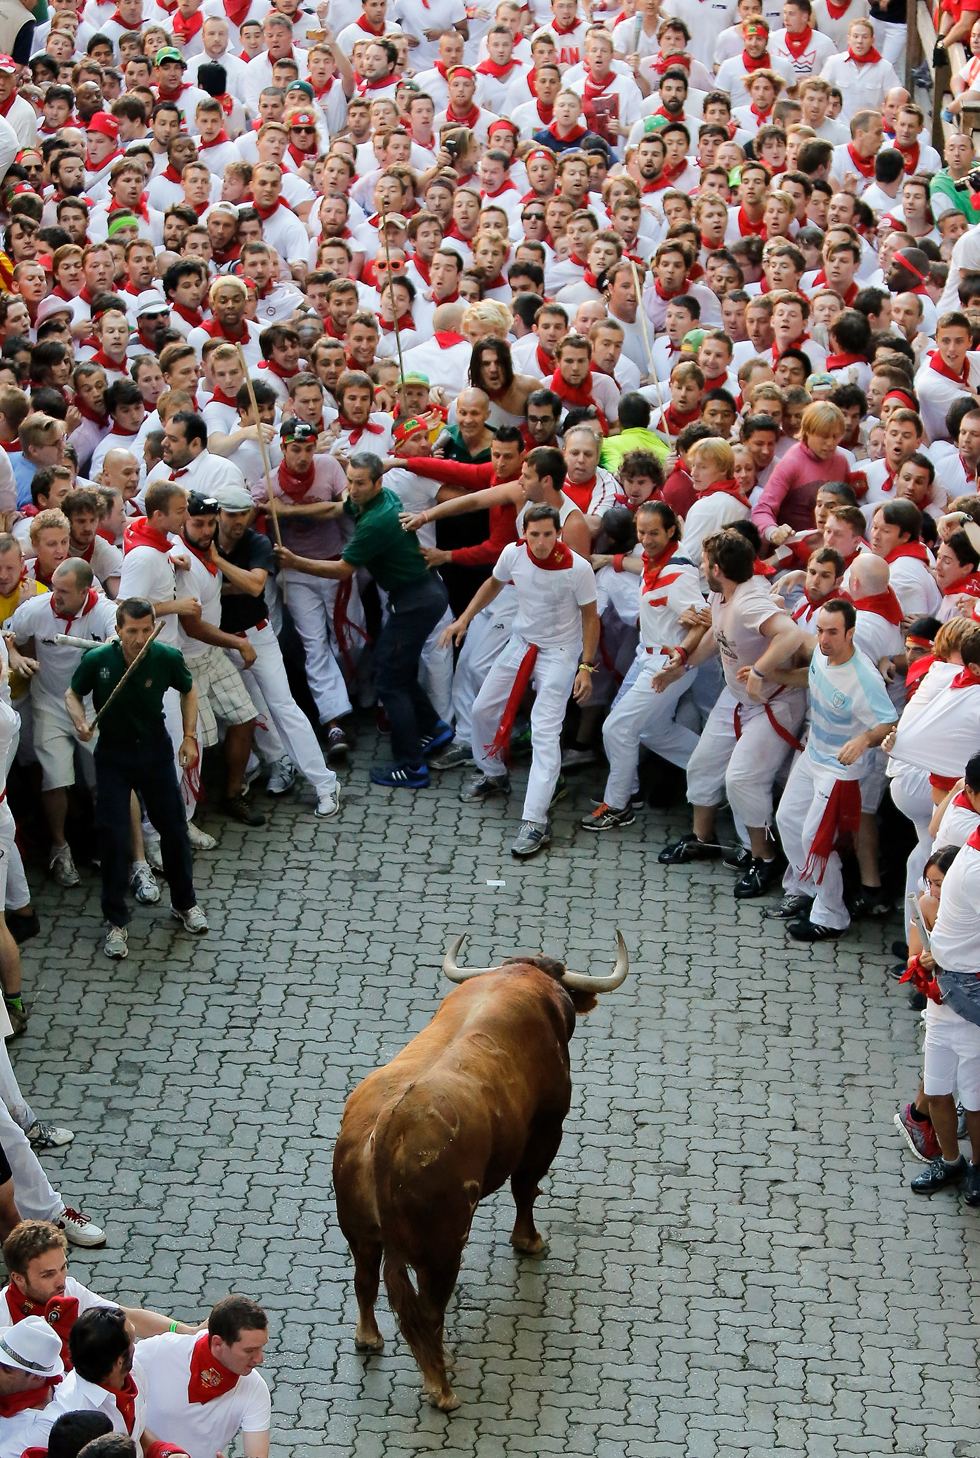 A bull stands alone, surrounded by a crowd of runners, on the way to entering the bullring during the second day of the San Fermin Running Of The Bulls festival, July 7, 2013, in Pamplona, Spain. The annual Fiesta de San Fermin, made famous by the 1926 novel of US writer Ernest Hemmingway 'The Sun Also Rises', involves the running of the bulls through the historic heart of Pamplona, It runs for nine days, from July 6-14. (Photo by Pablo Blazquez Dominguez/Getty Images)